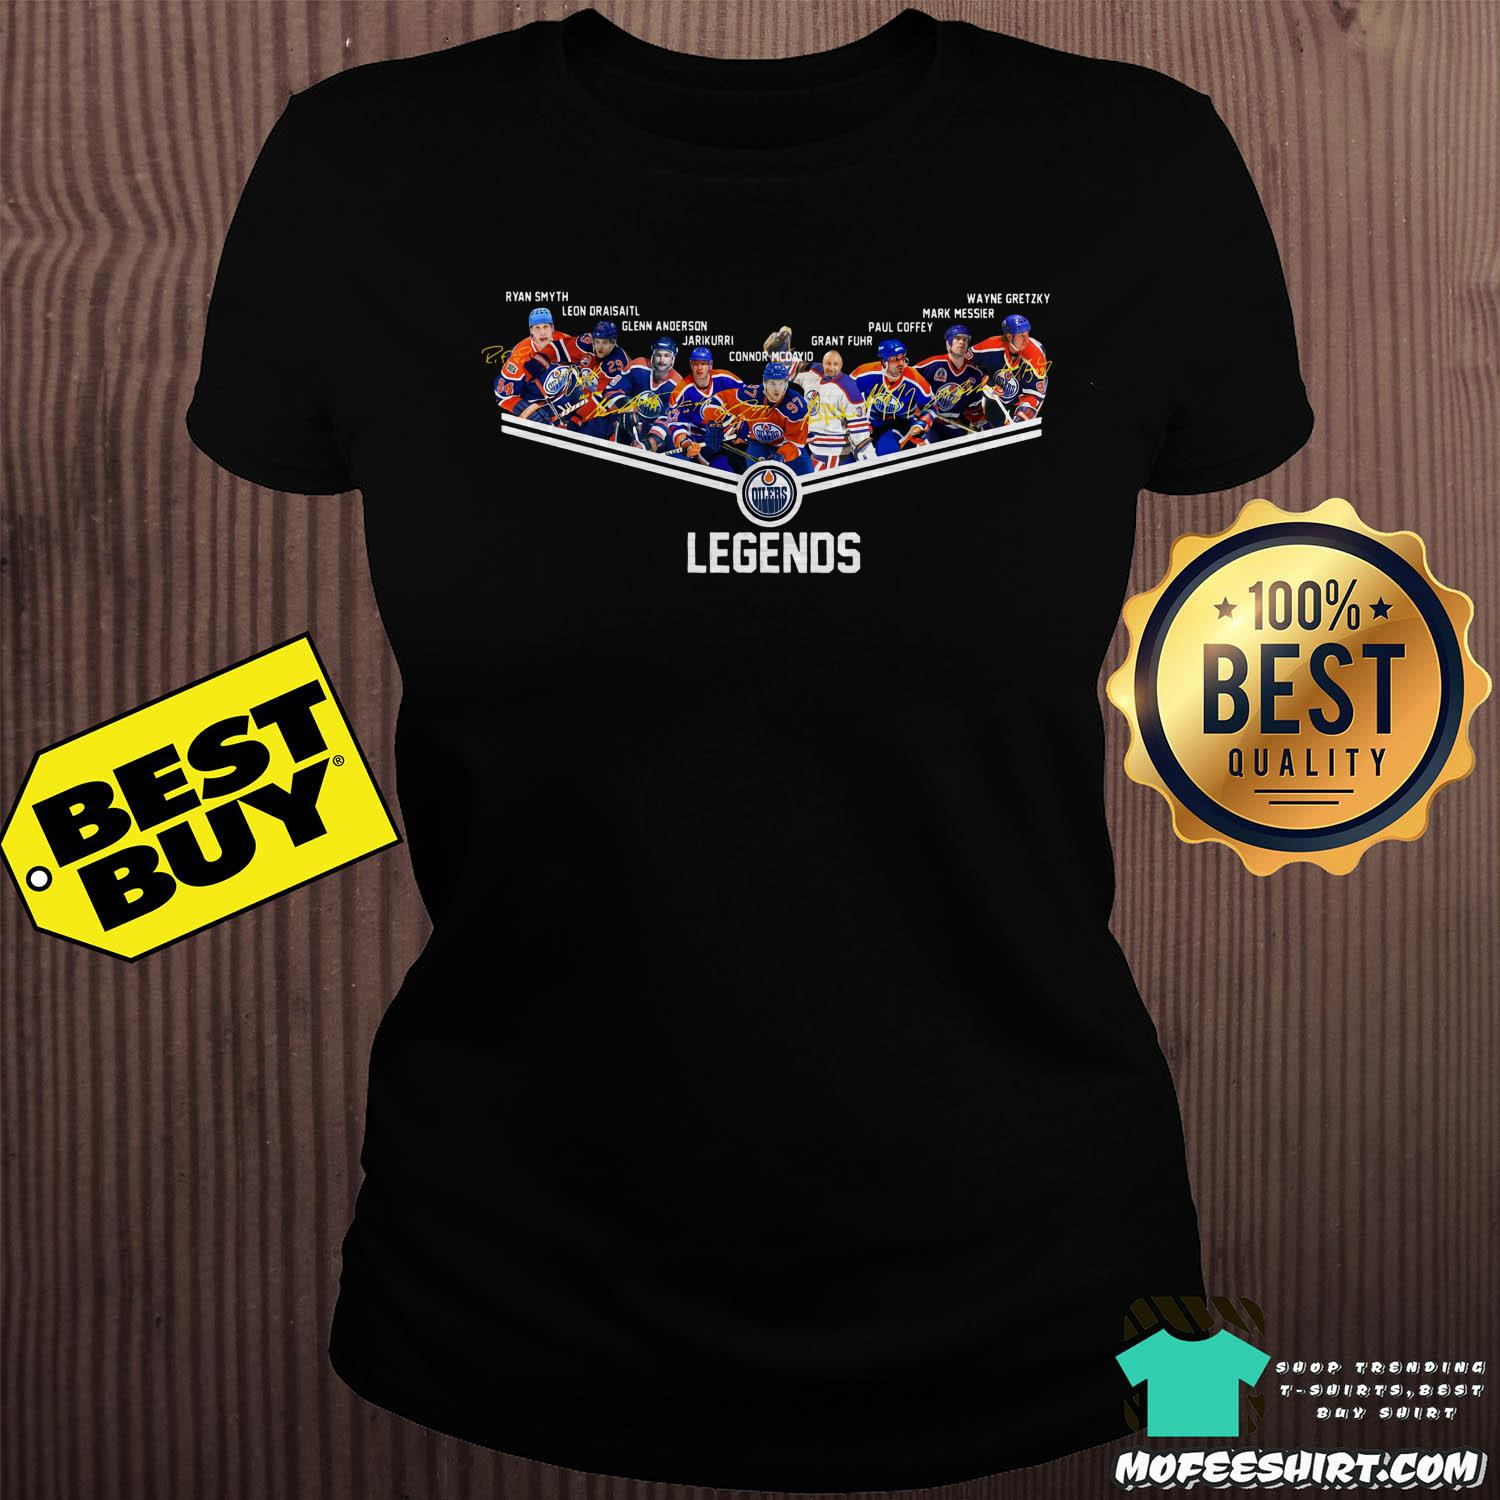 edmonton oilers legend all players signatures ladies tee - Edmonton Oilers legend all players signatures shirt